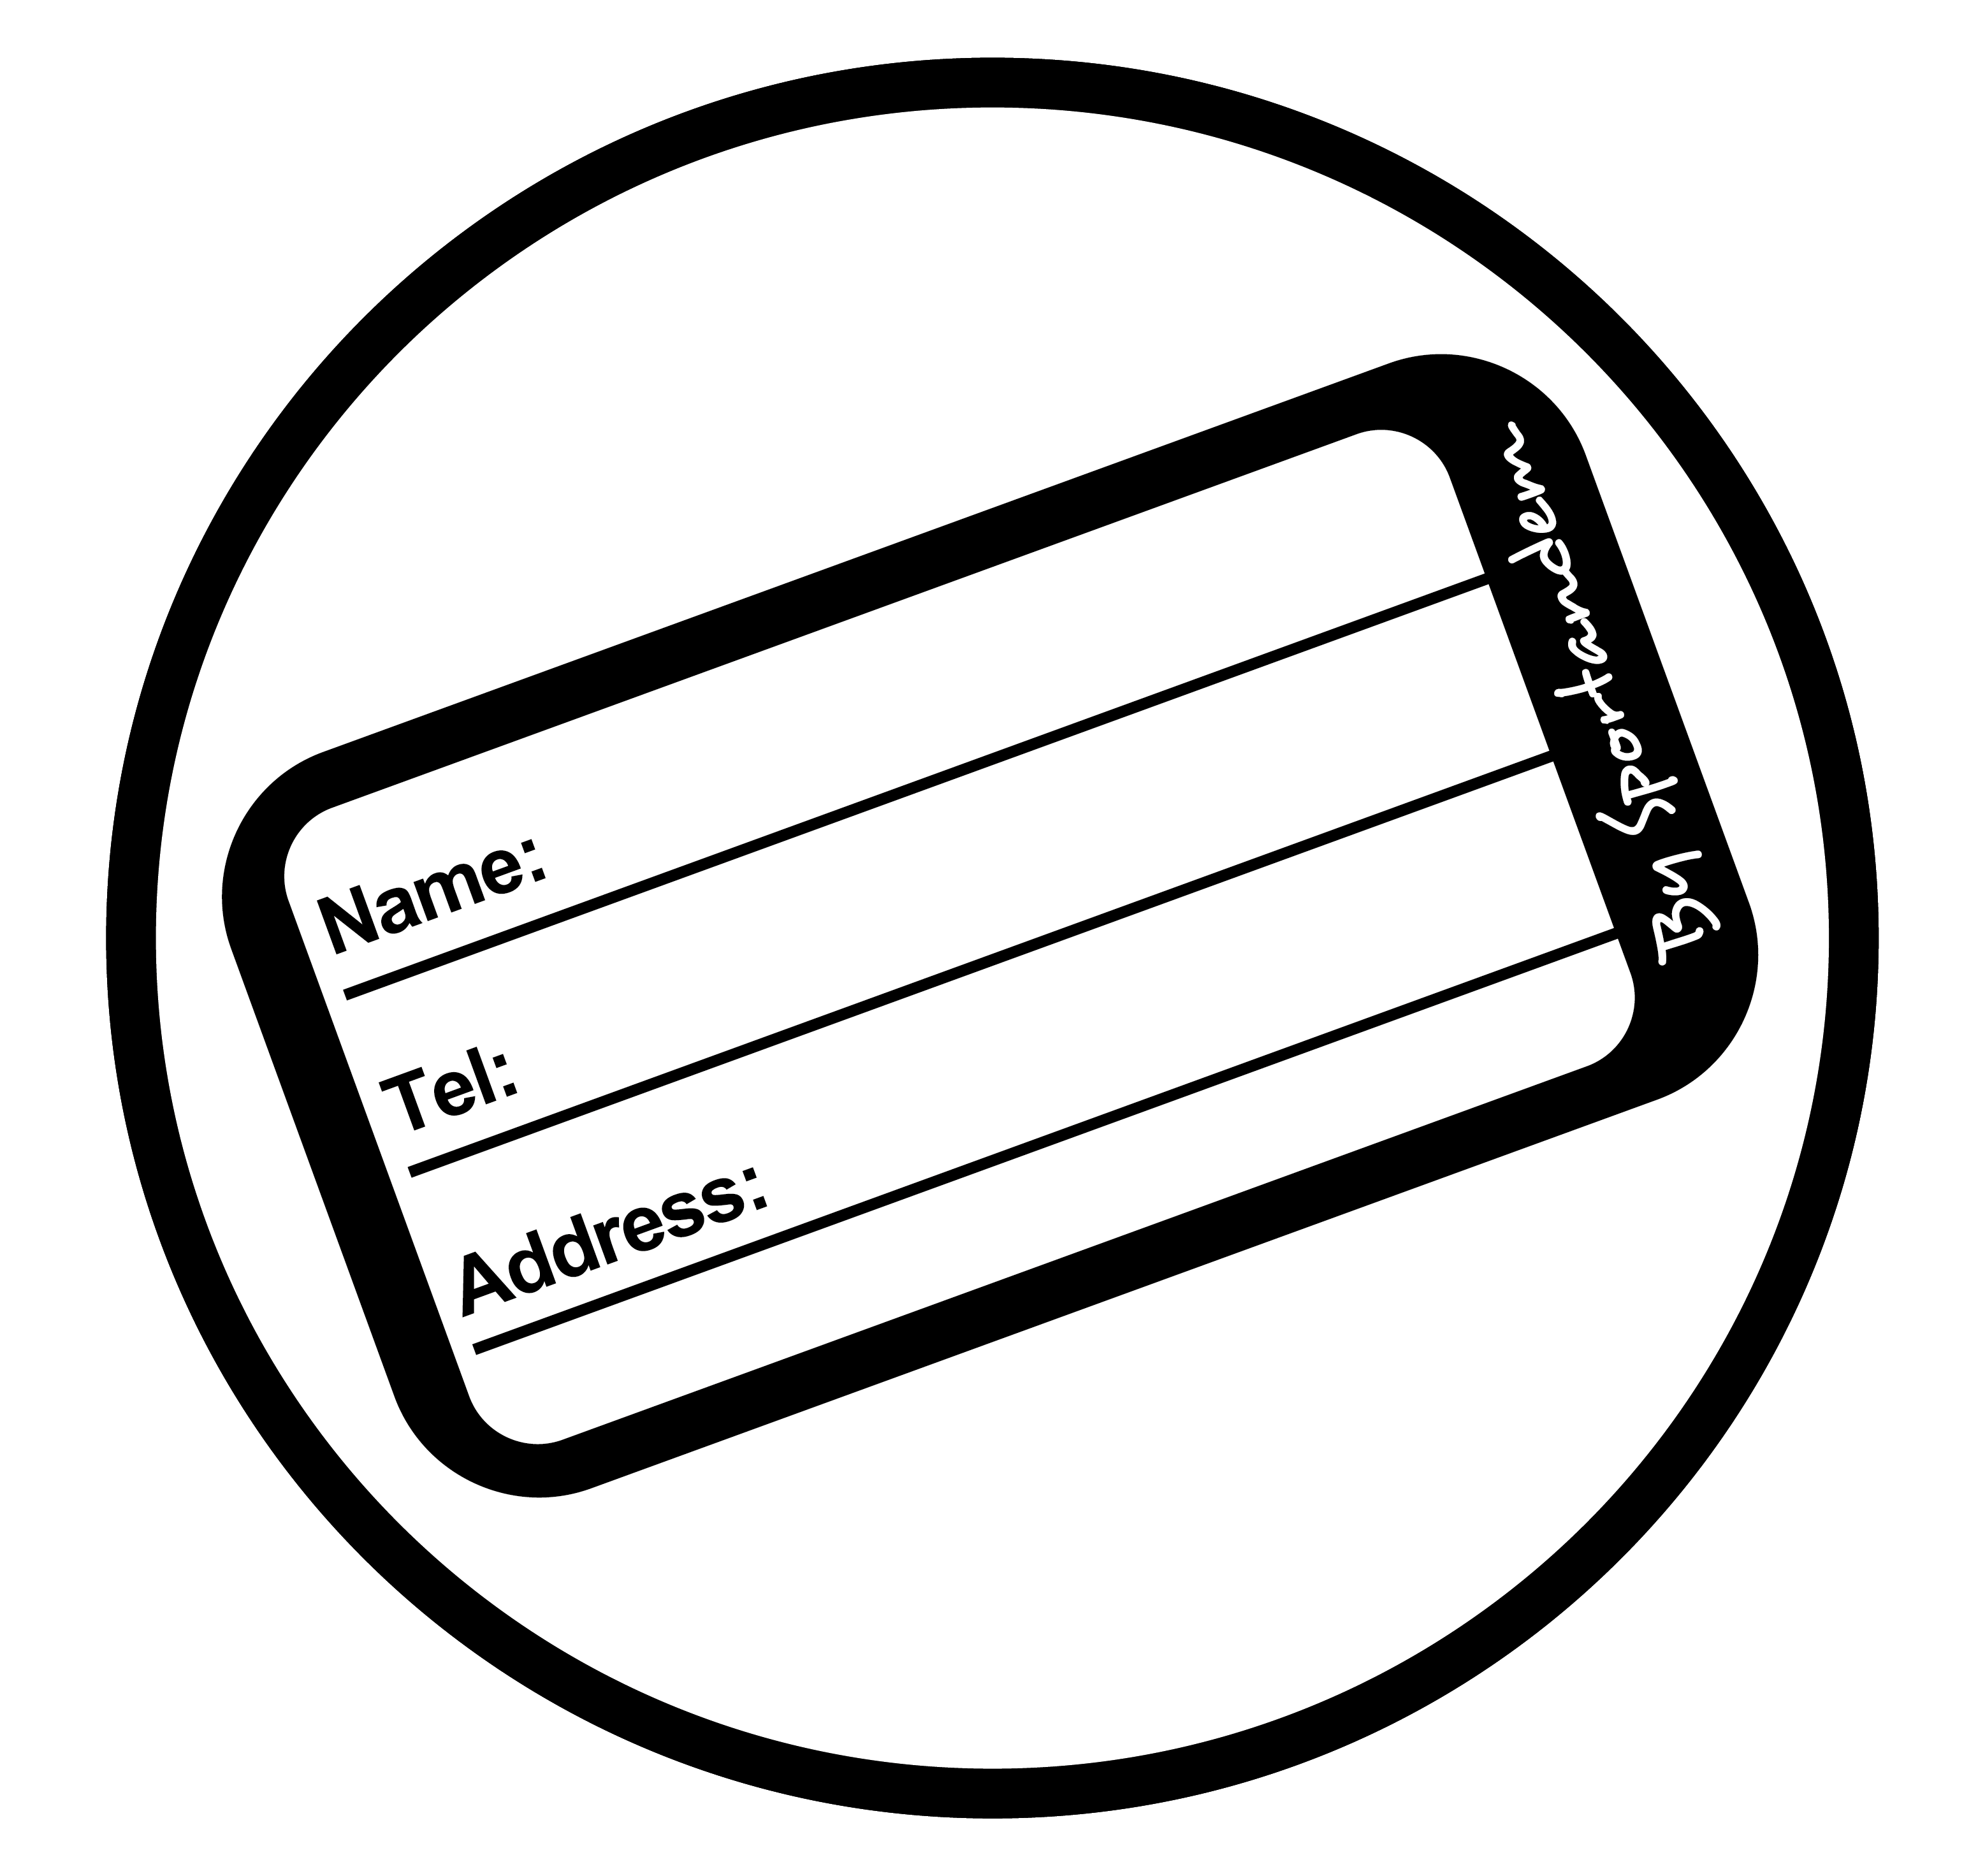 Name tag to write contact information.